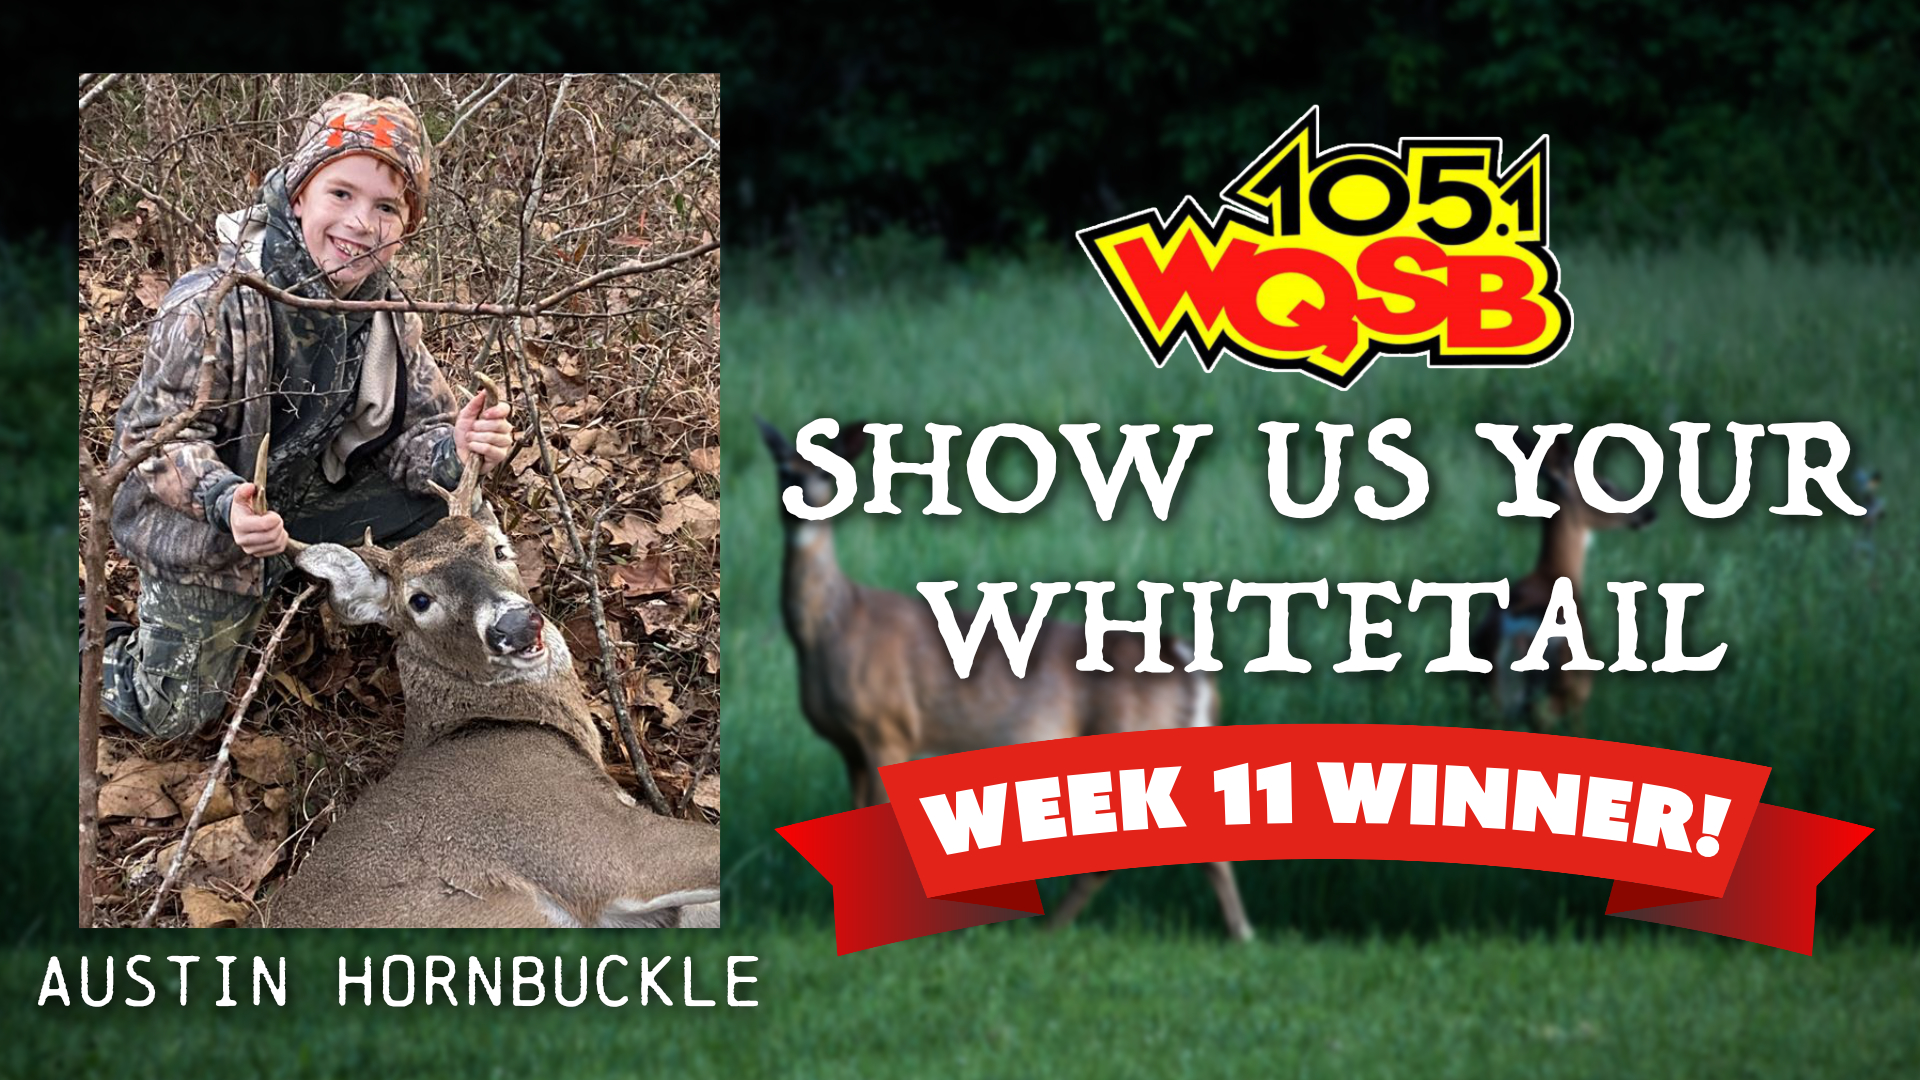 WQSB Show us Your Whitetail Winner 2020-2021 Week 11